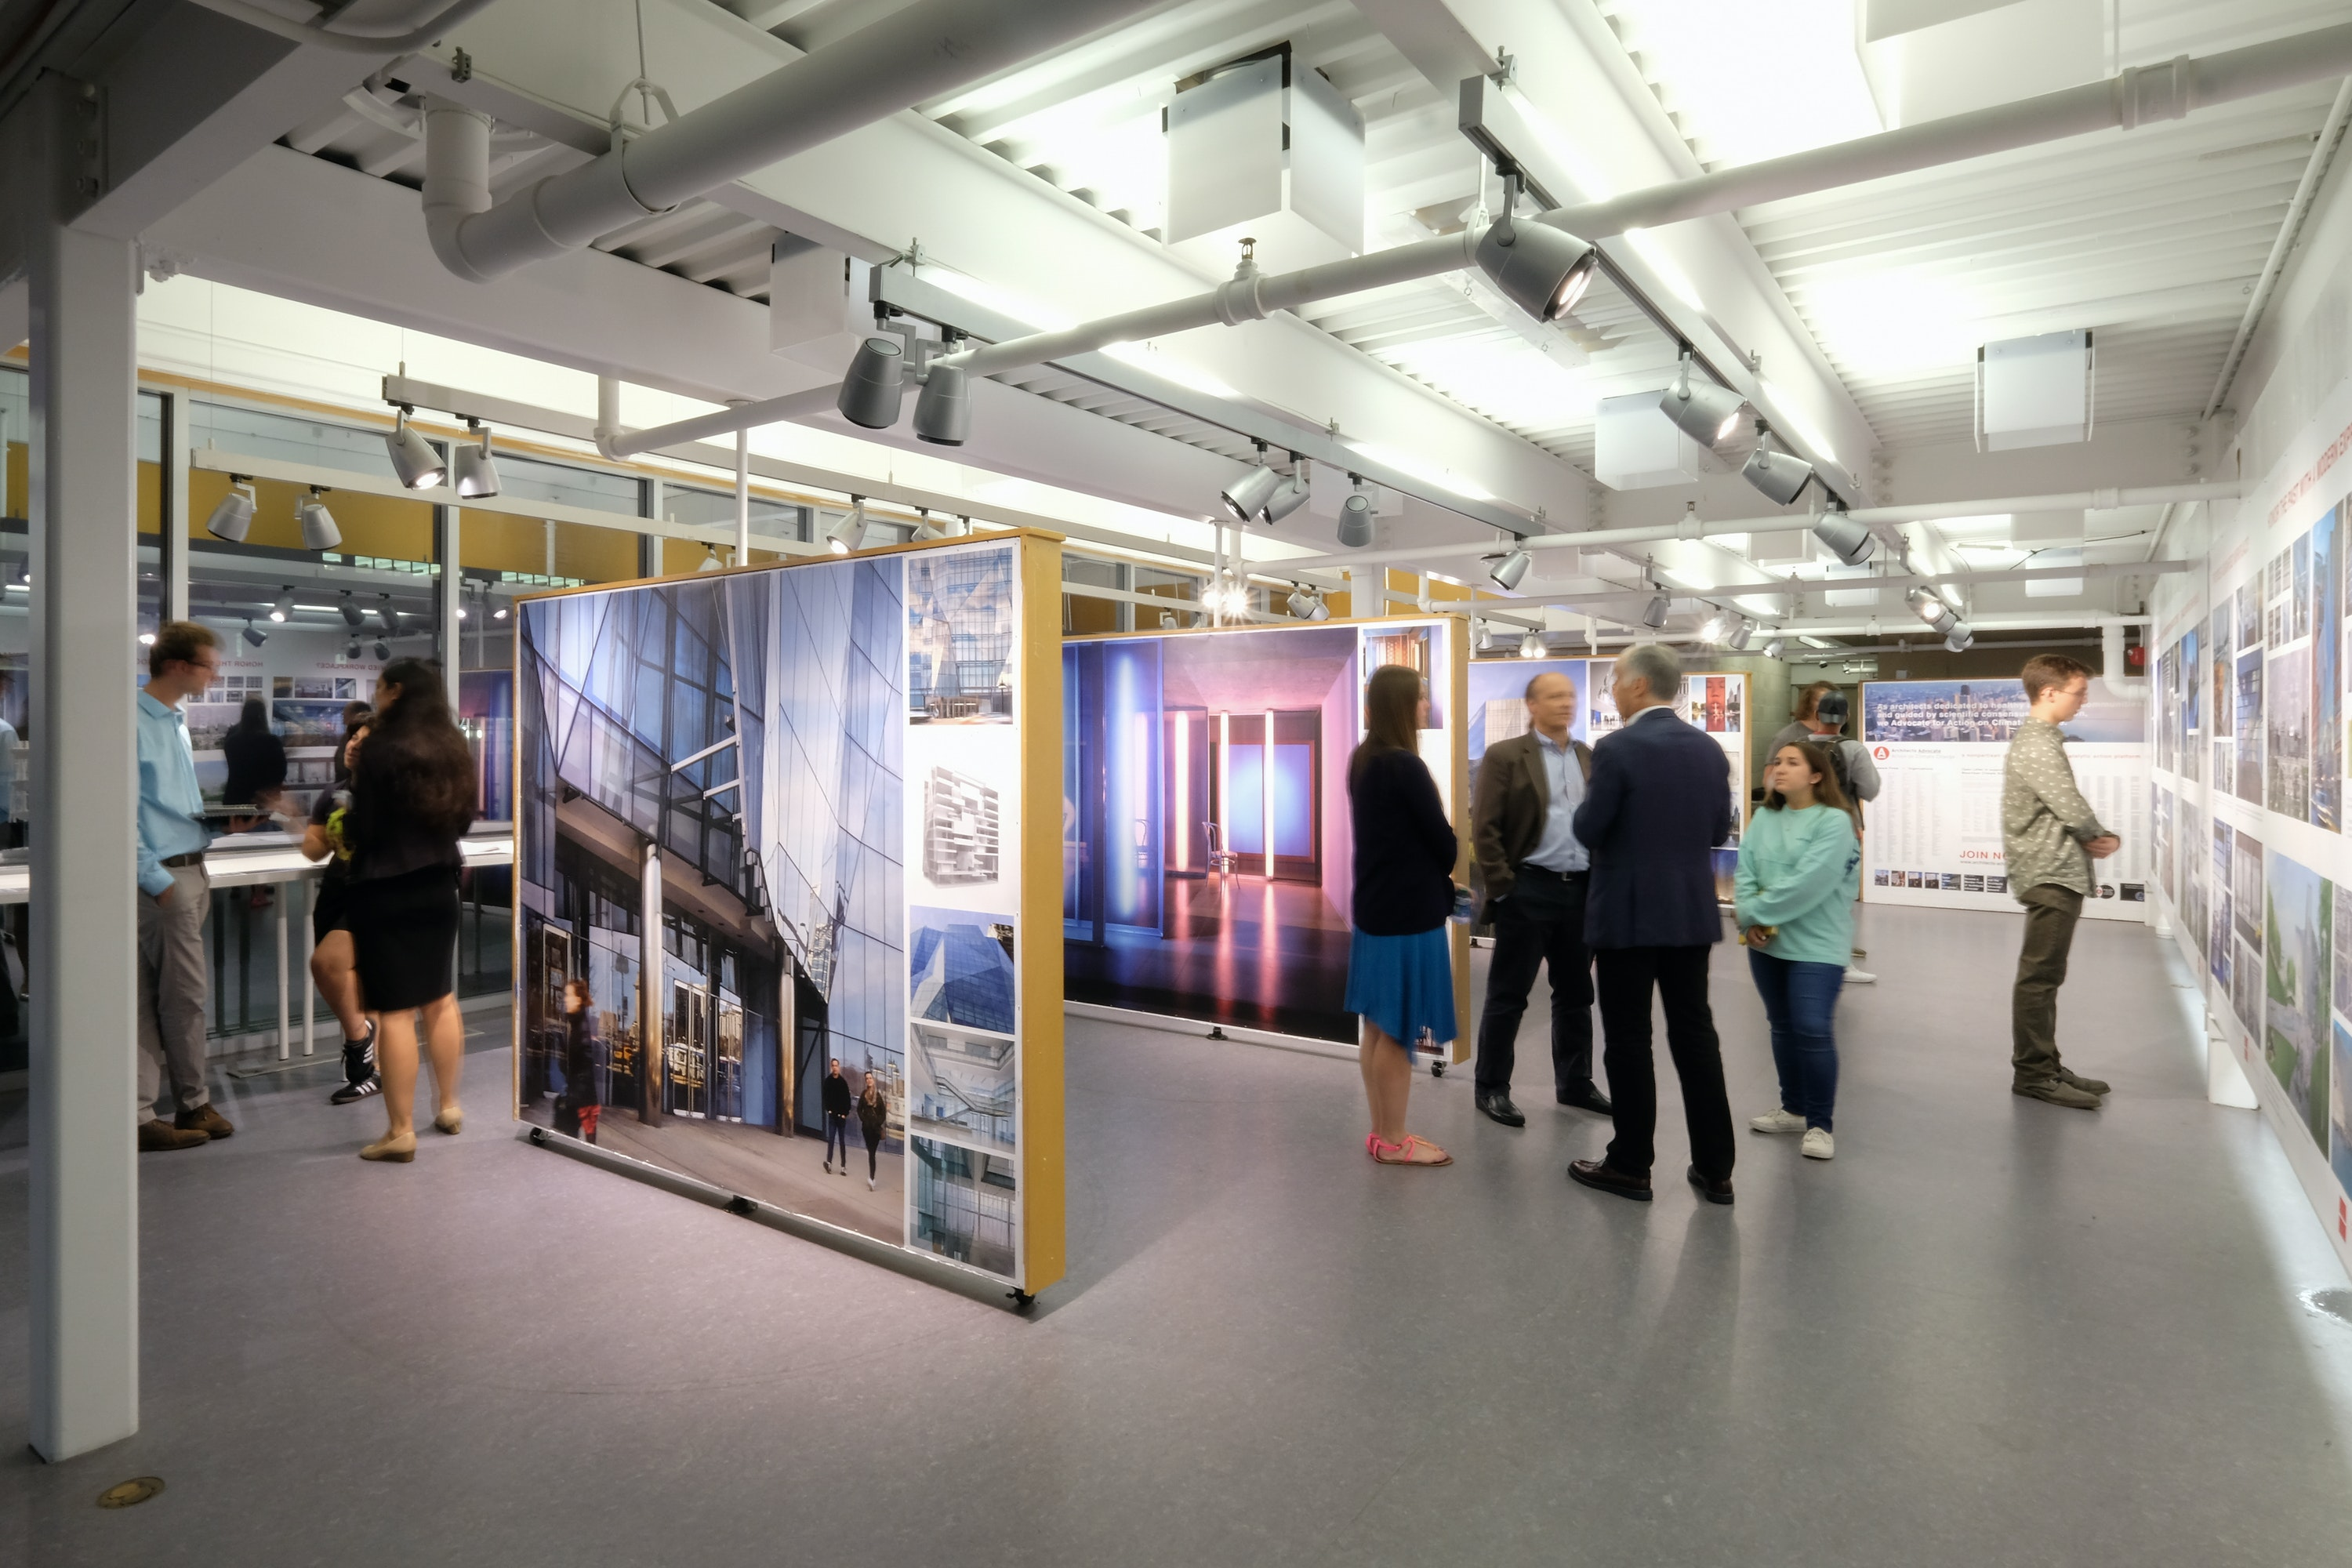 Exhibition: Making Architecture 03